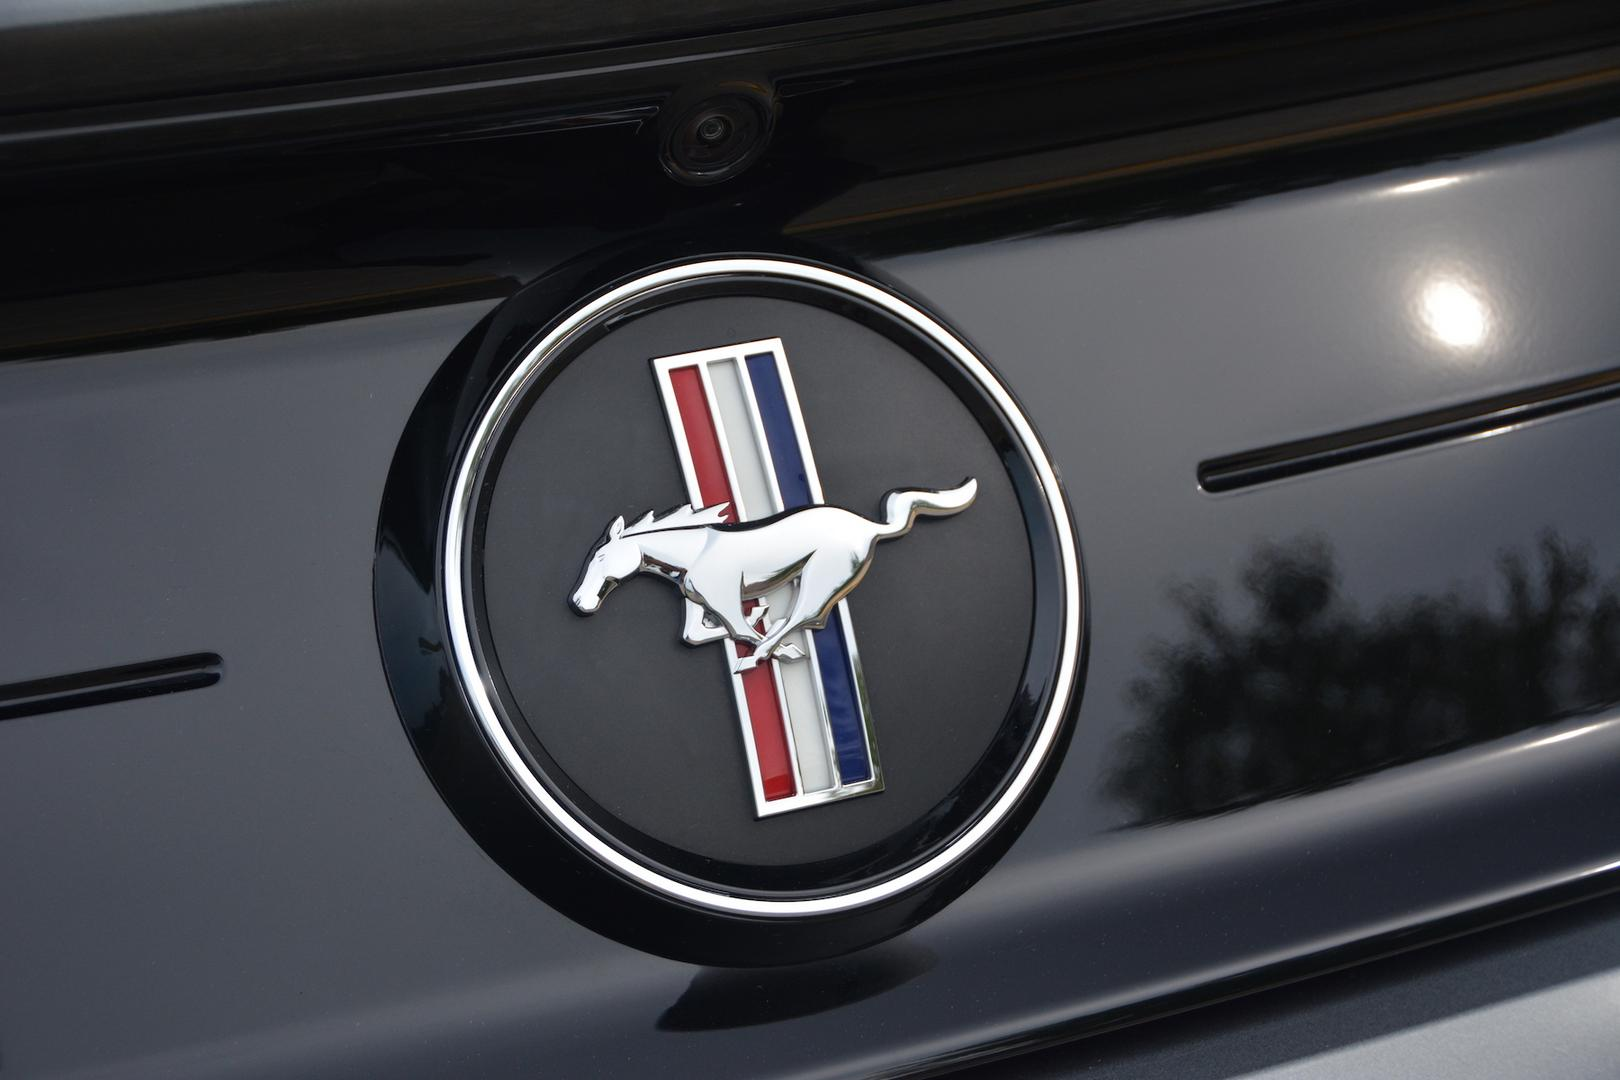 Ford Mustang EcoBoost Badge